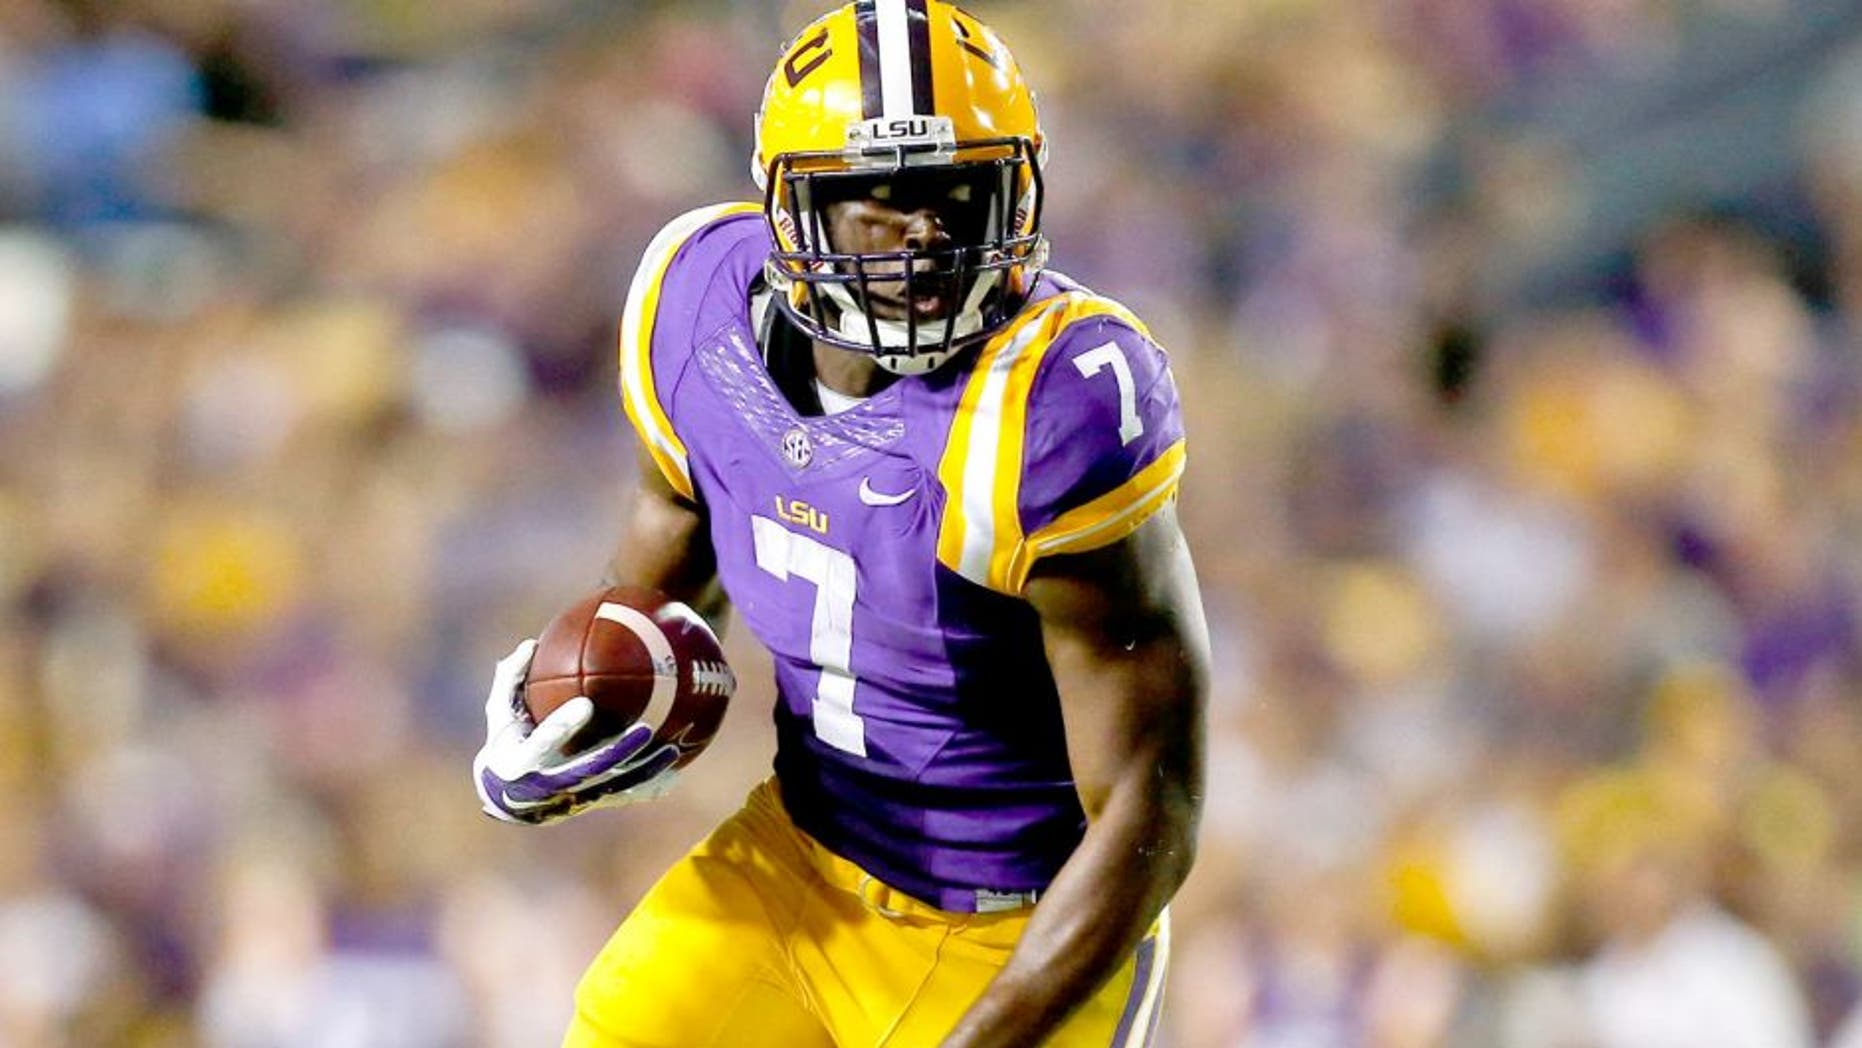 Sep 27, 2014; Baton Rouge, LA, USA; LSU Tigers running back Leonard Fournette (7) breaks loose for a touchdown run against the New Mexico State Aggies during the second quarter of a game at Tiger Stadium. Mandatory Credit: Derick E. Hingle-USA TODAY Sports